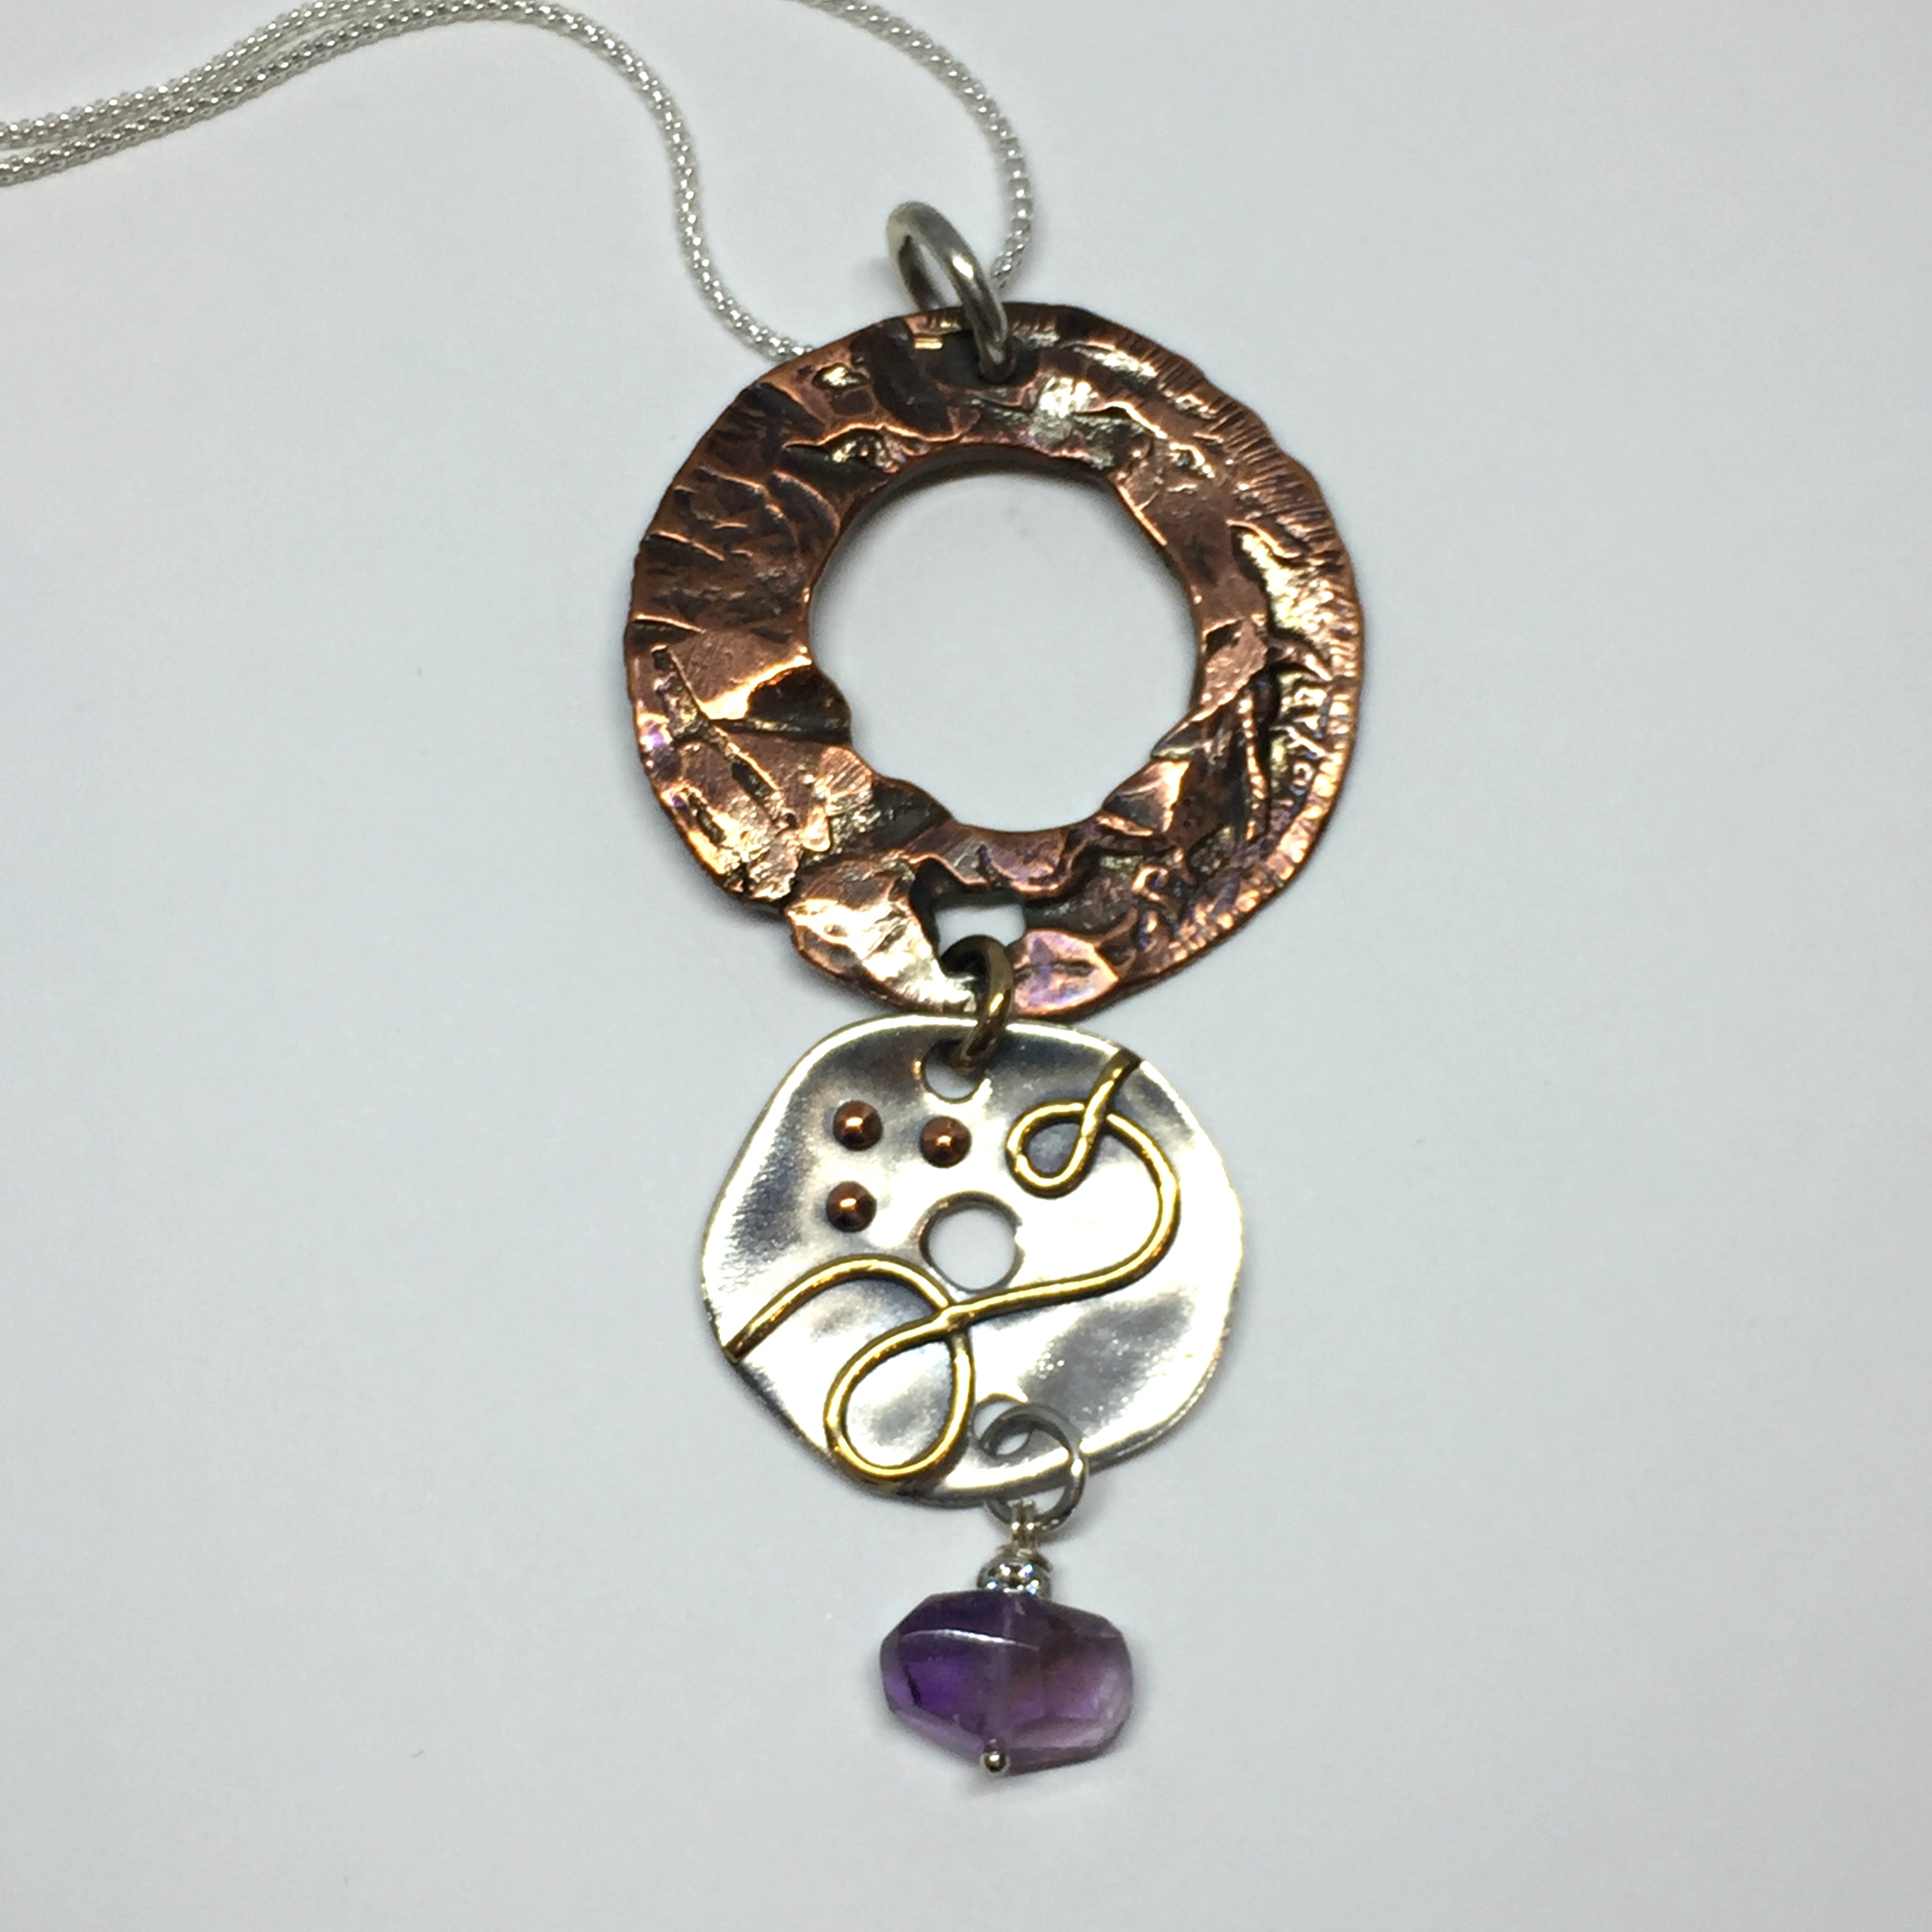 Amethyst Creation, one of a kind necklace by Karyn Chopik | Effusion Art Gallery + Cast Glass Studio, Invermere BC